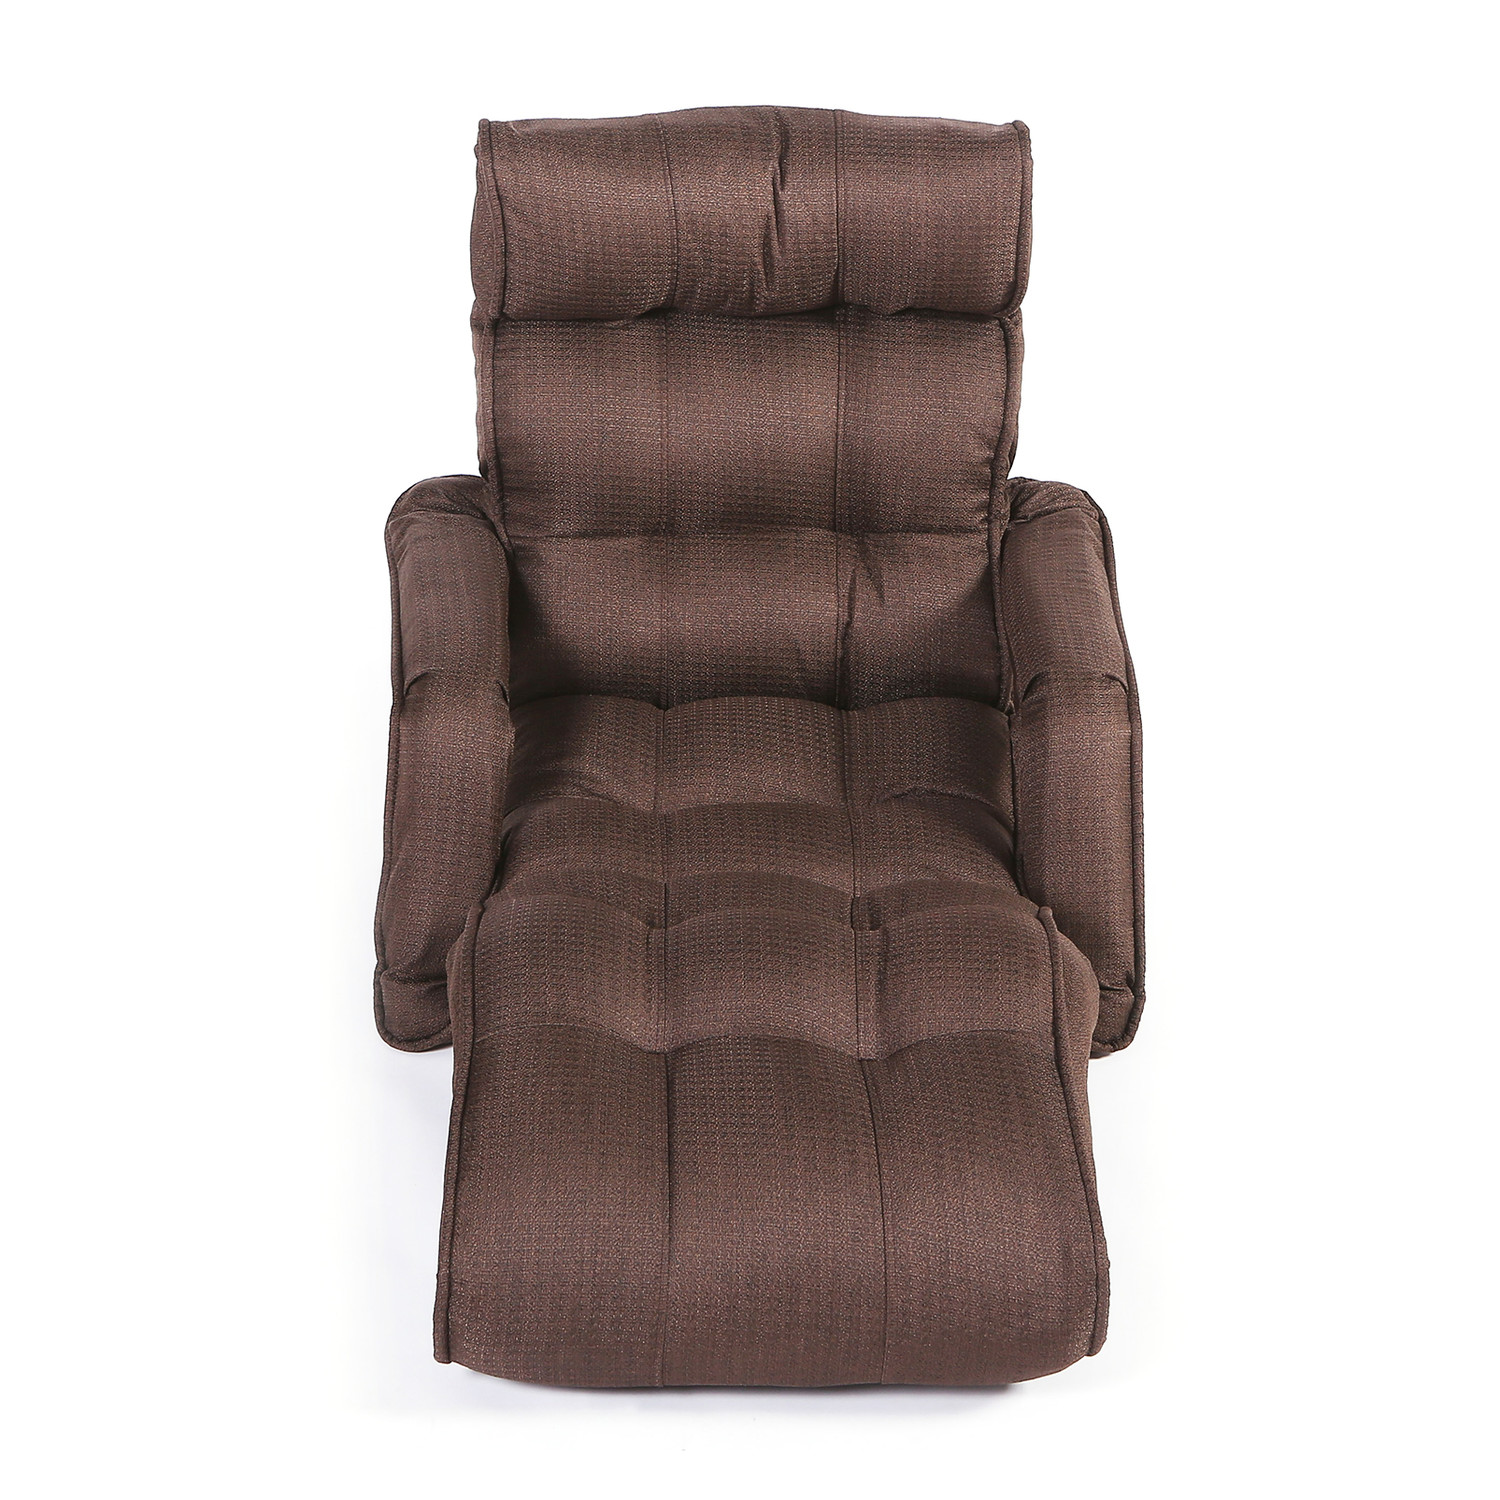 pro sofa chair recliner parrot green cozy kino touch. Black Bedroom Furniture Sets. Home Design Ideas